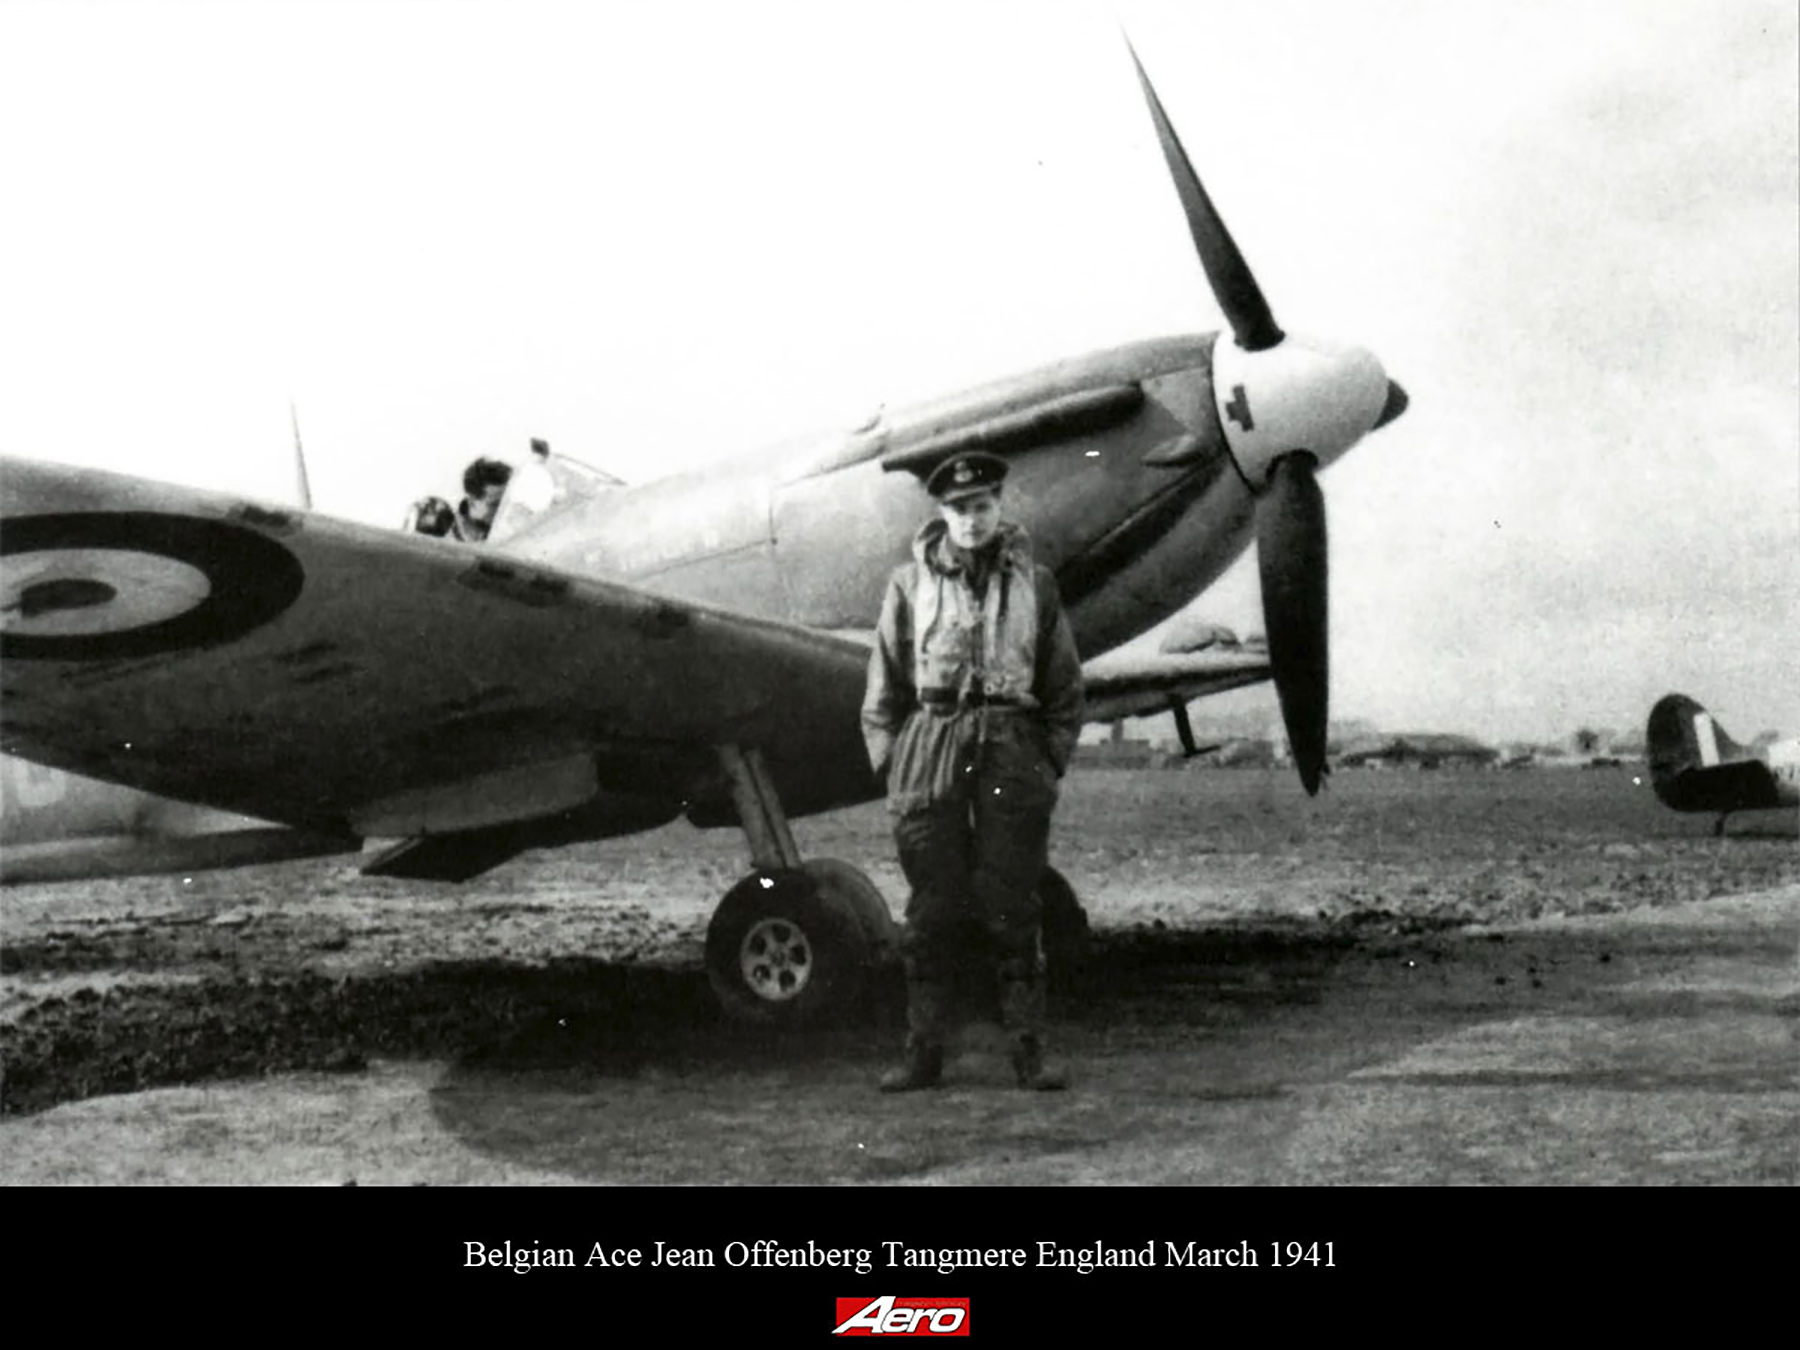 Aircrew RAF 145 Squadron Belgian Ace Jean Offenberg Tangmere England March 1941 02